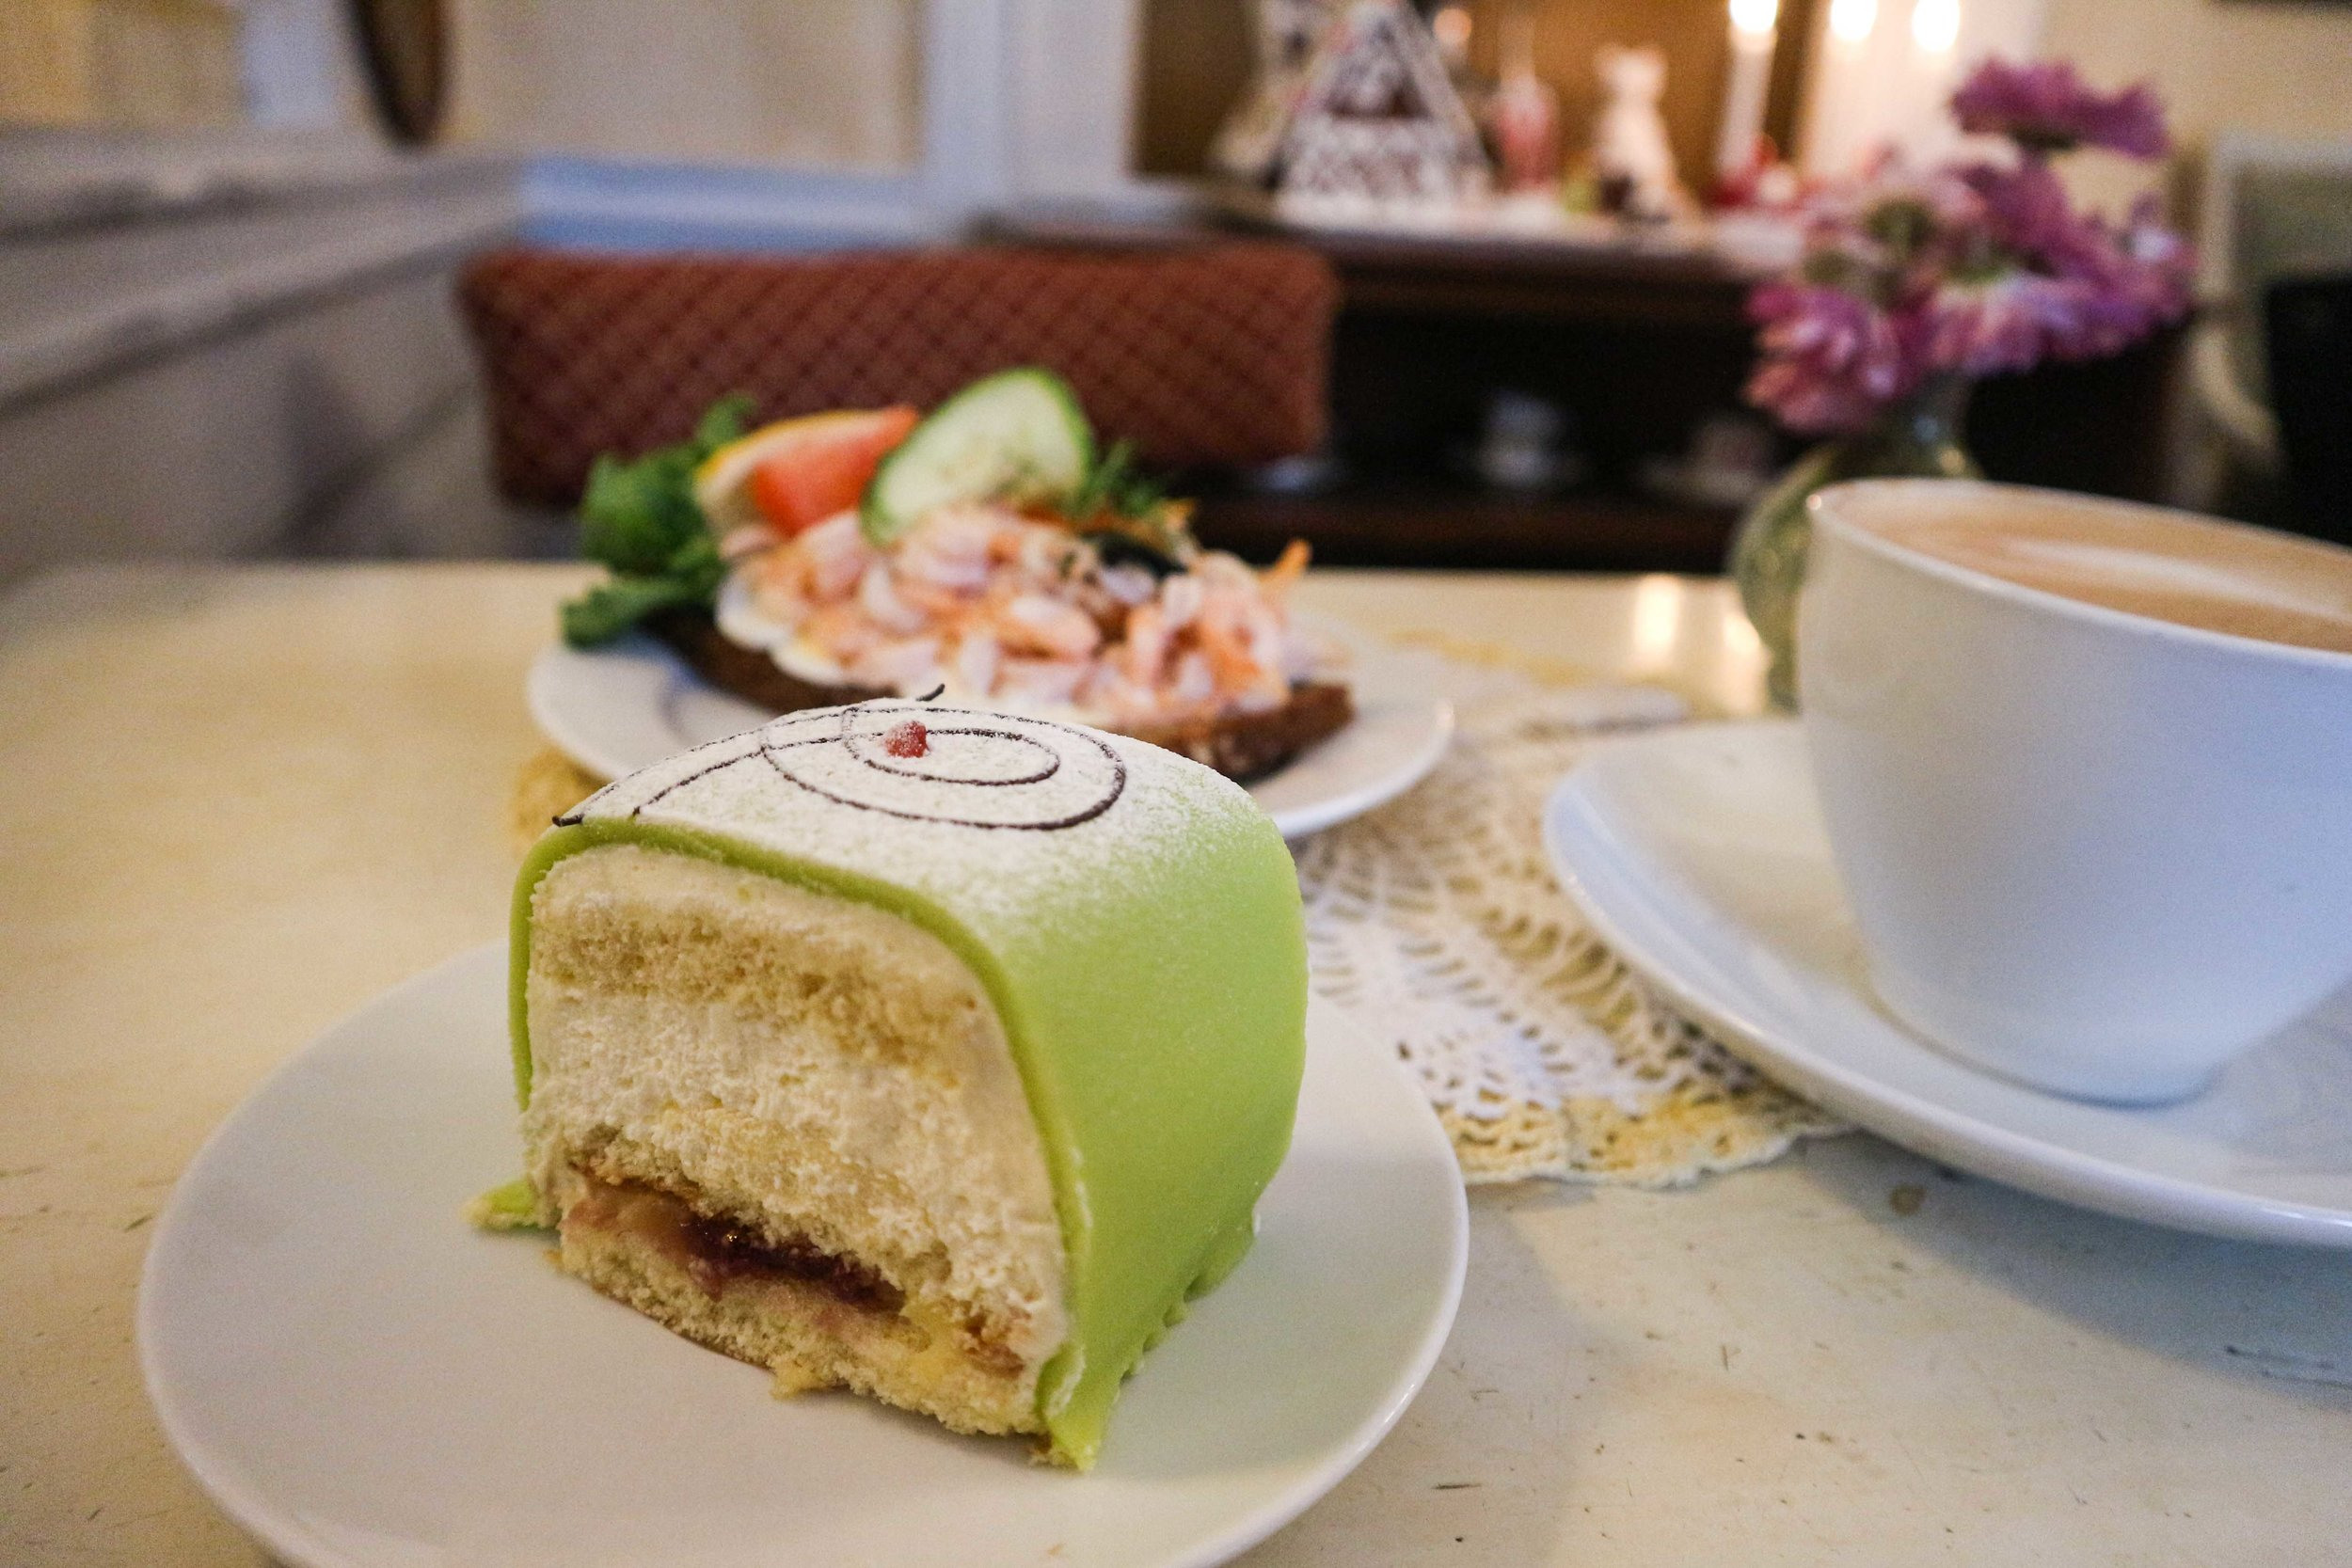 Swedish Princess Cake and Smörgås lunch.